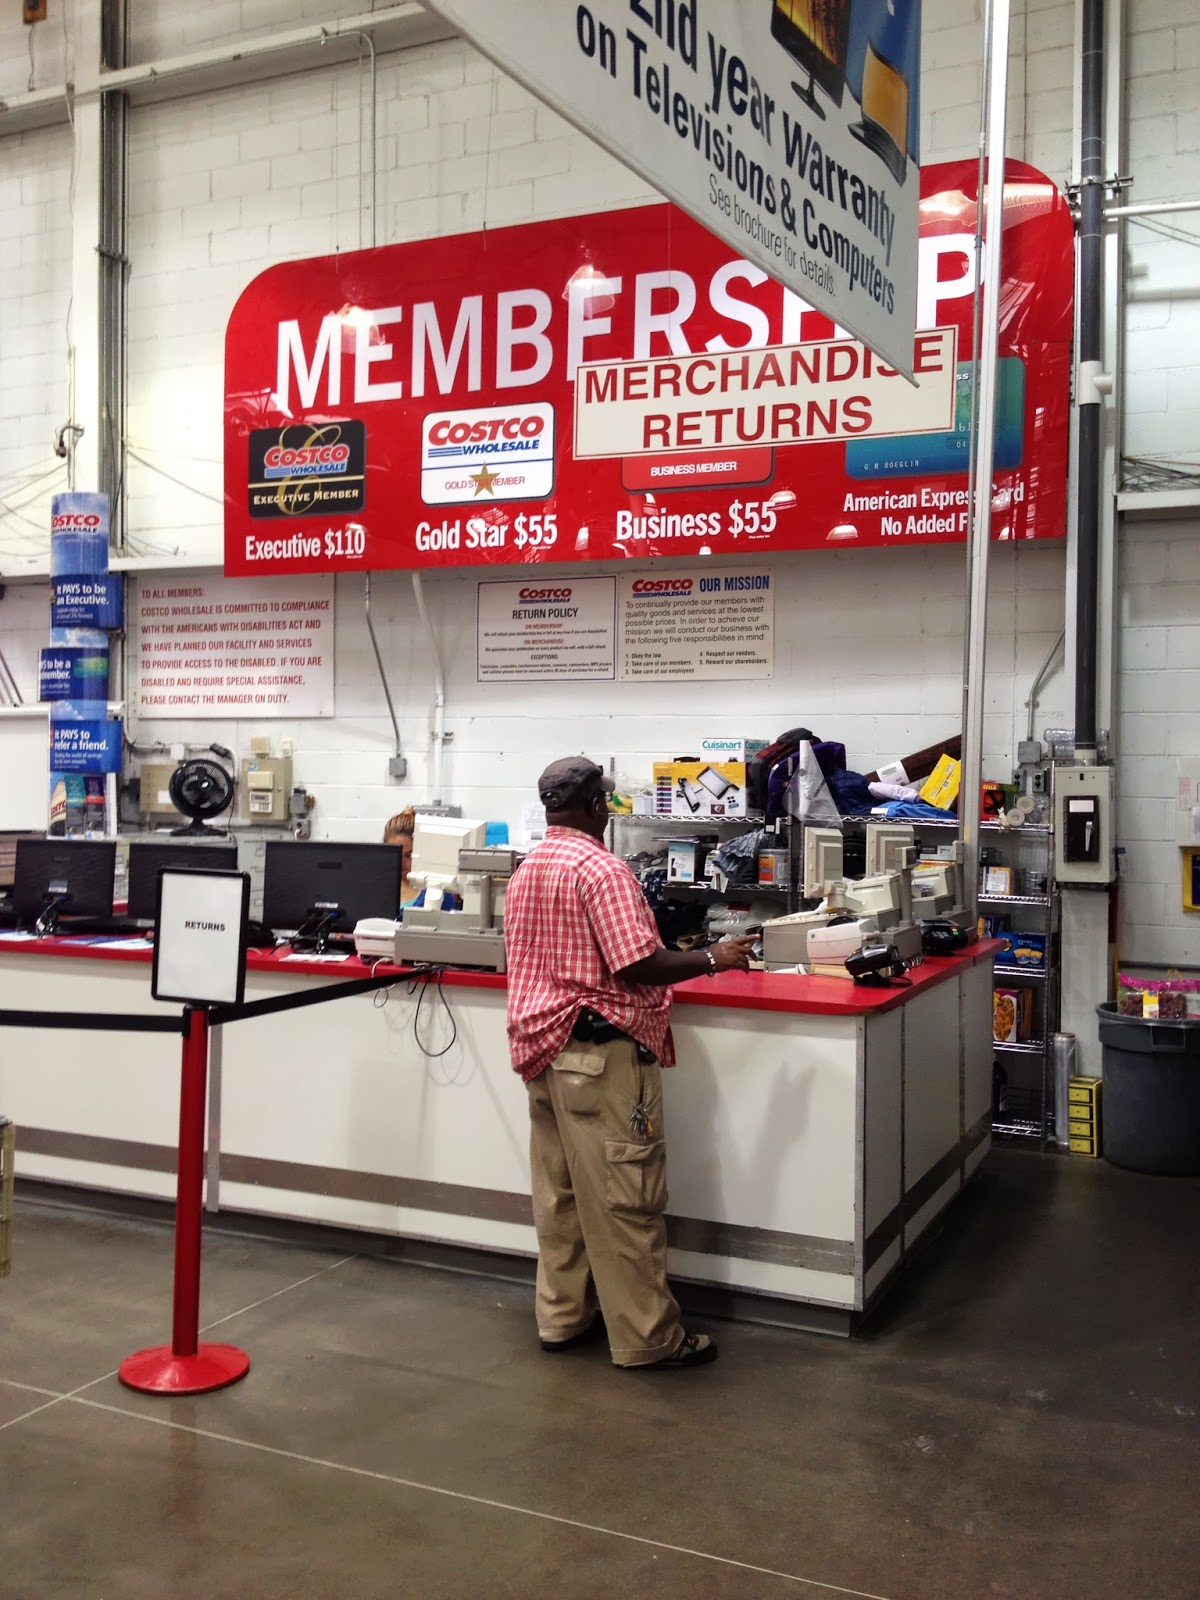 do you really know what you re eating costco return policy is the return policy is listed on a sign at the front counter of my costco whole in hackensack